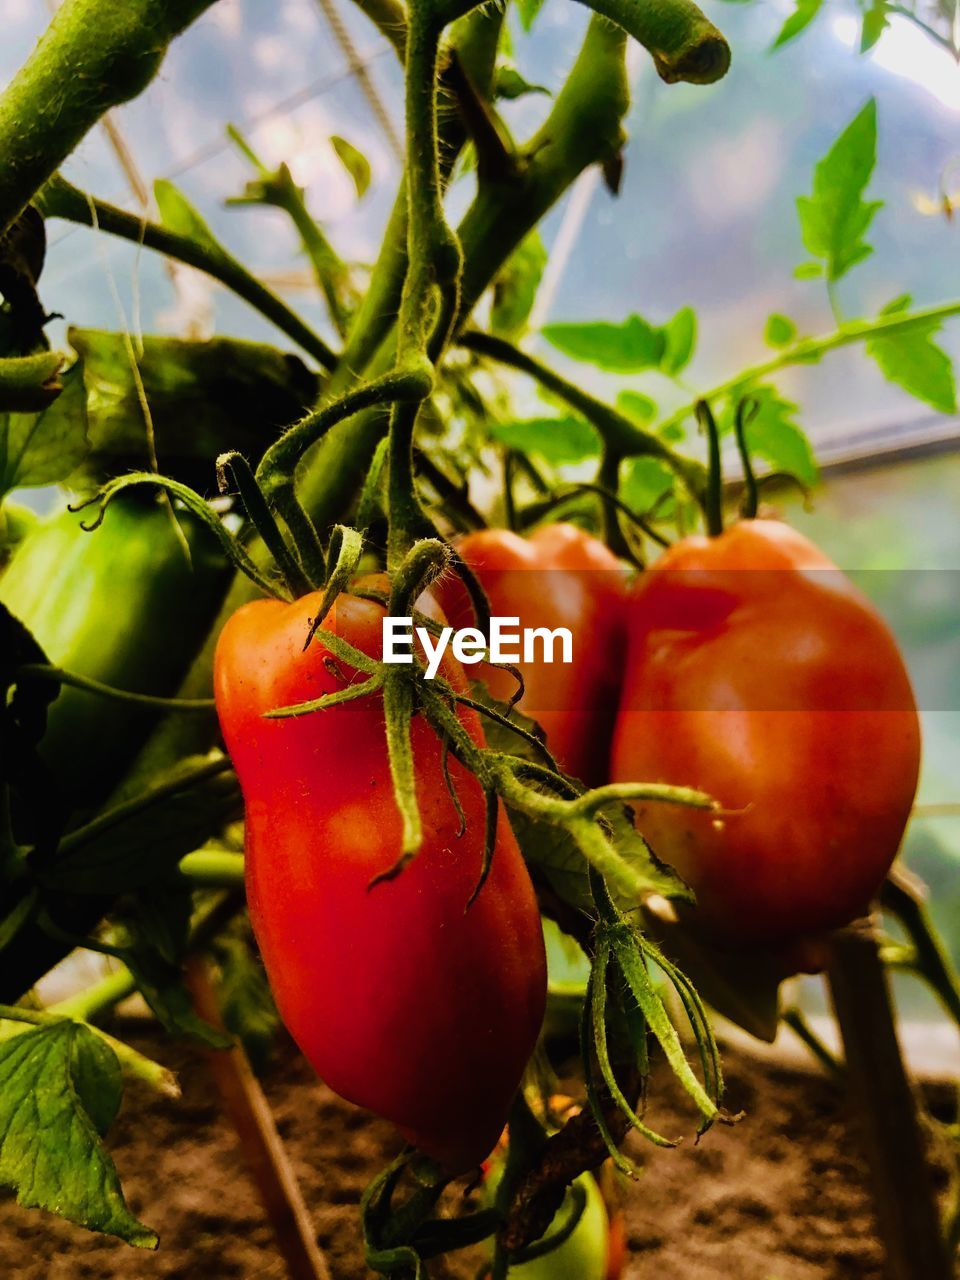 food and drink, food, red, vegetable, healthy eating, tomato, fruit, freshness, growth, plant, wellbeing, leaf, nature, plant part, close-up, no people, focus on foreground, green color, day, ripe